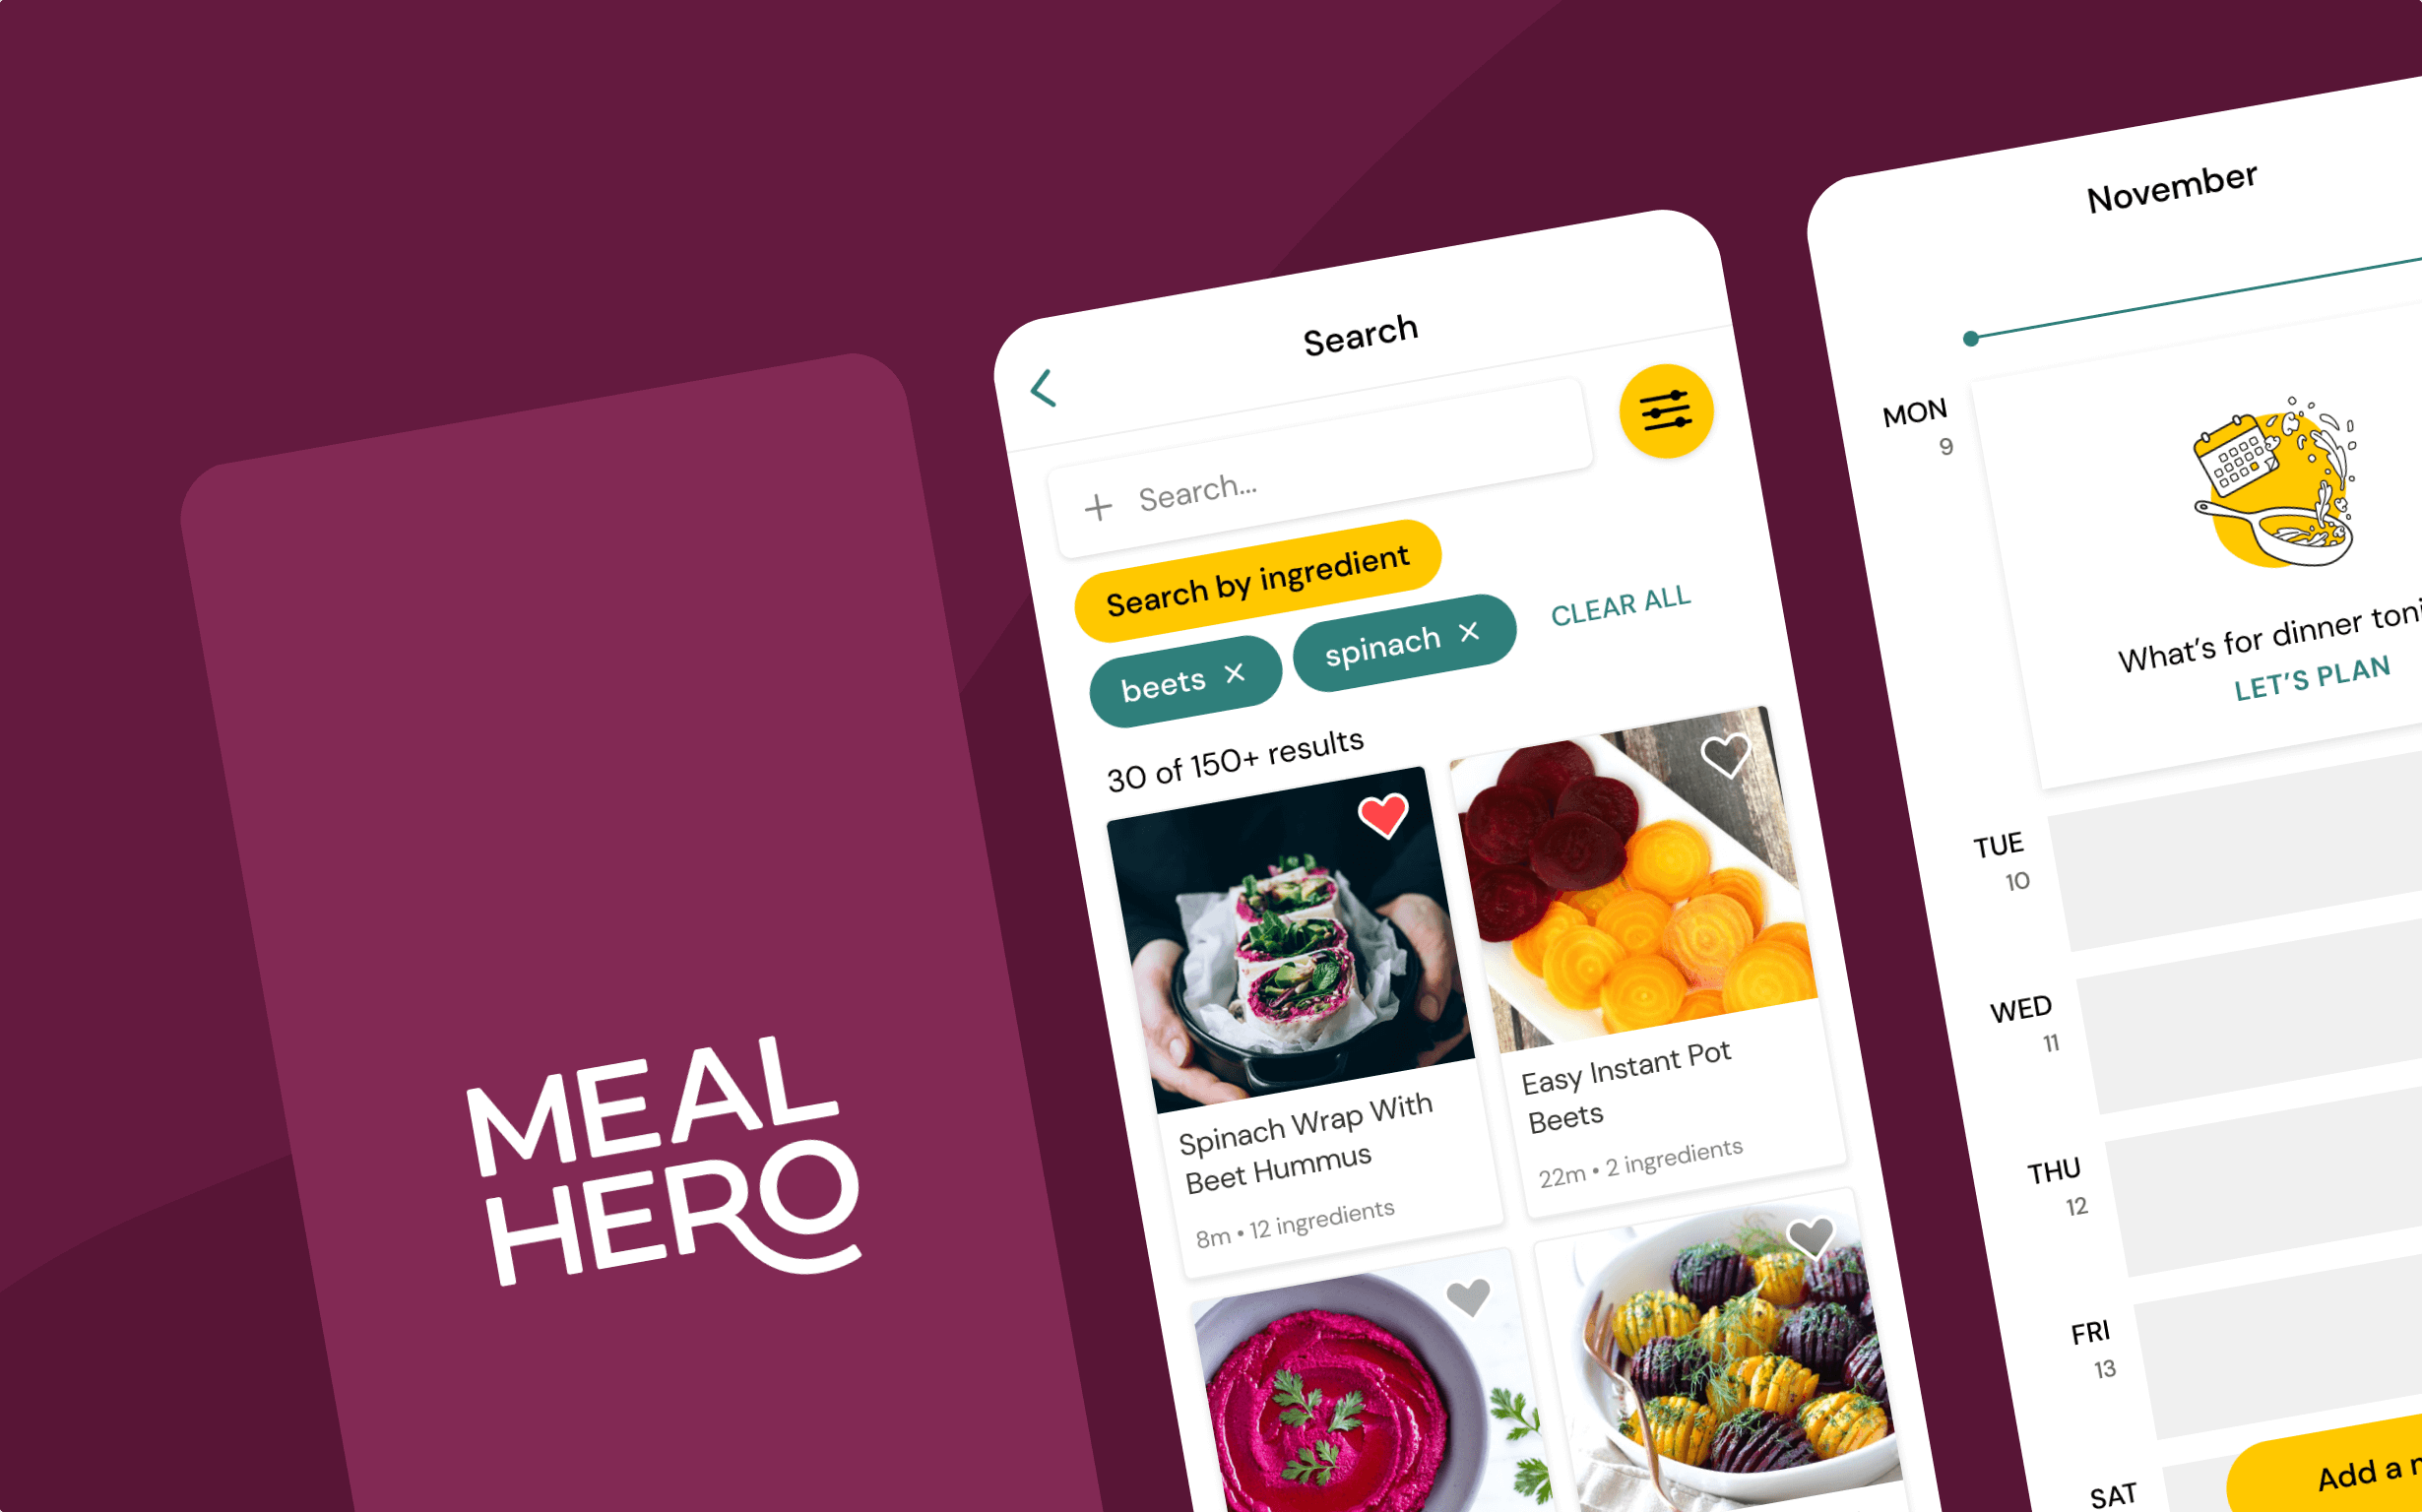 Designs for Meal Hero's mobile app showing pages search for meals, and schedule meals.